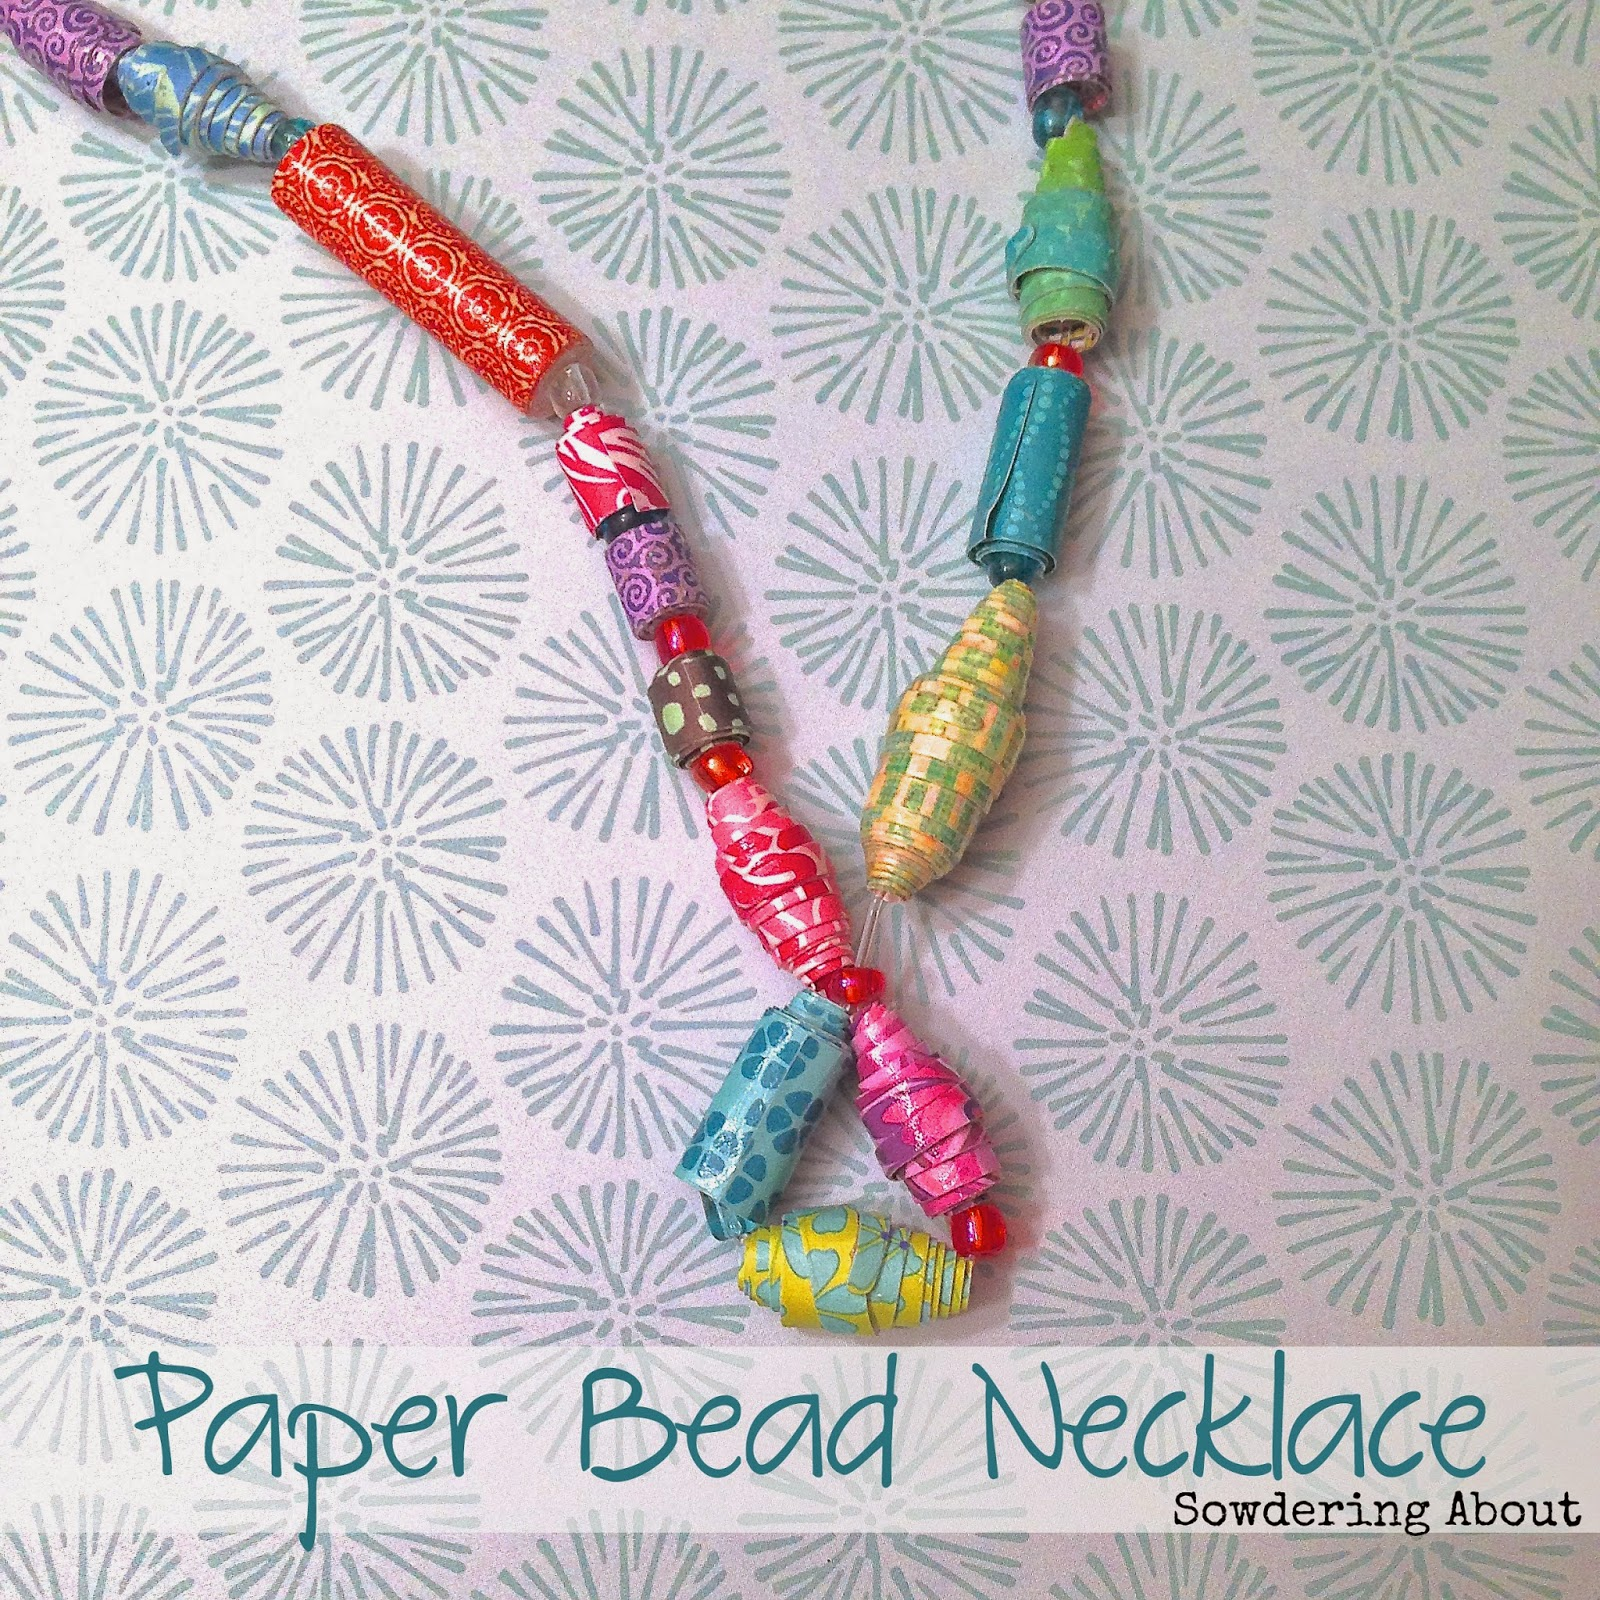 Diy silhouette charm necklace tutorial silhouette school paper bead necklac fandeluxe Choice Image